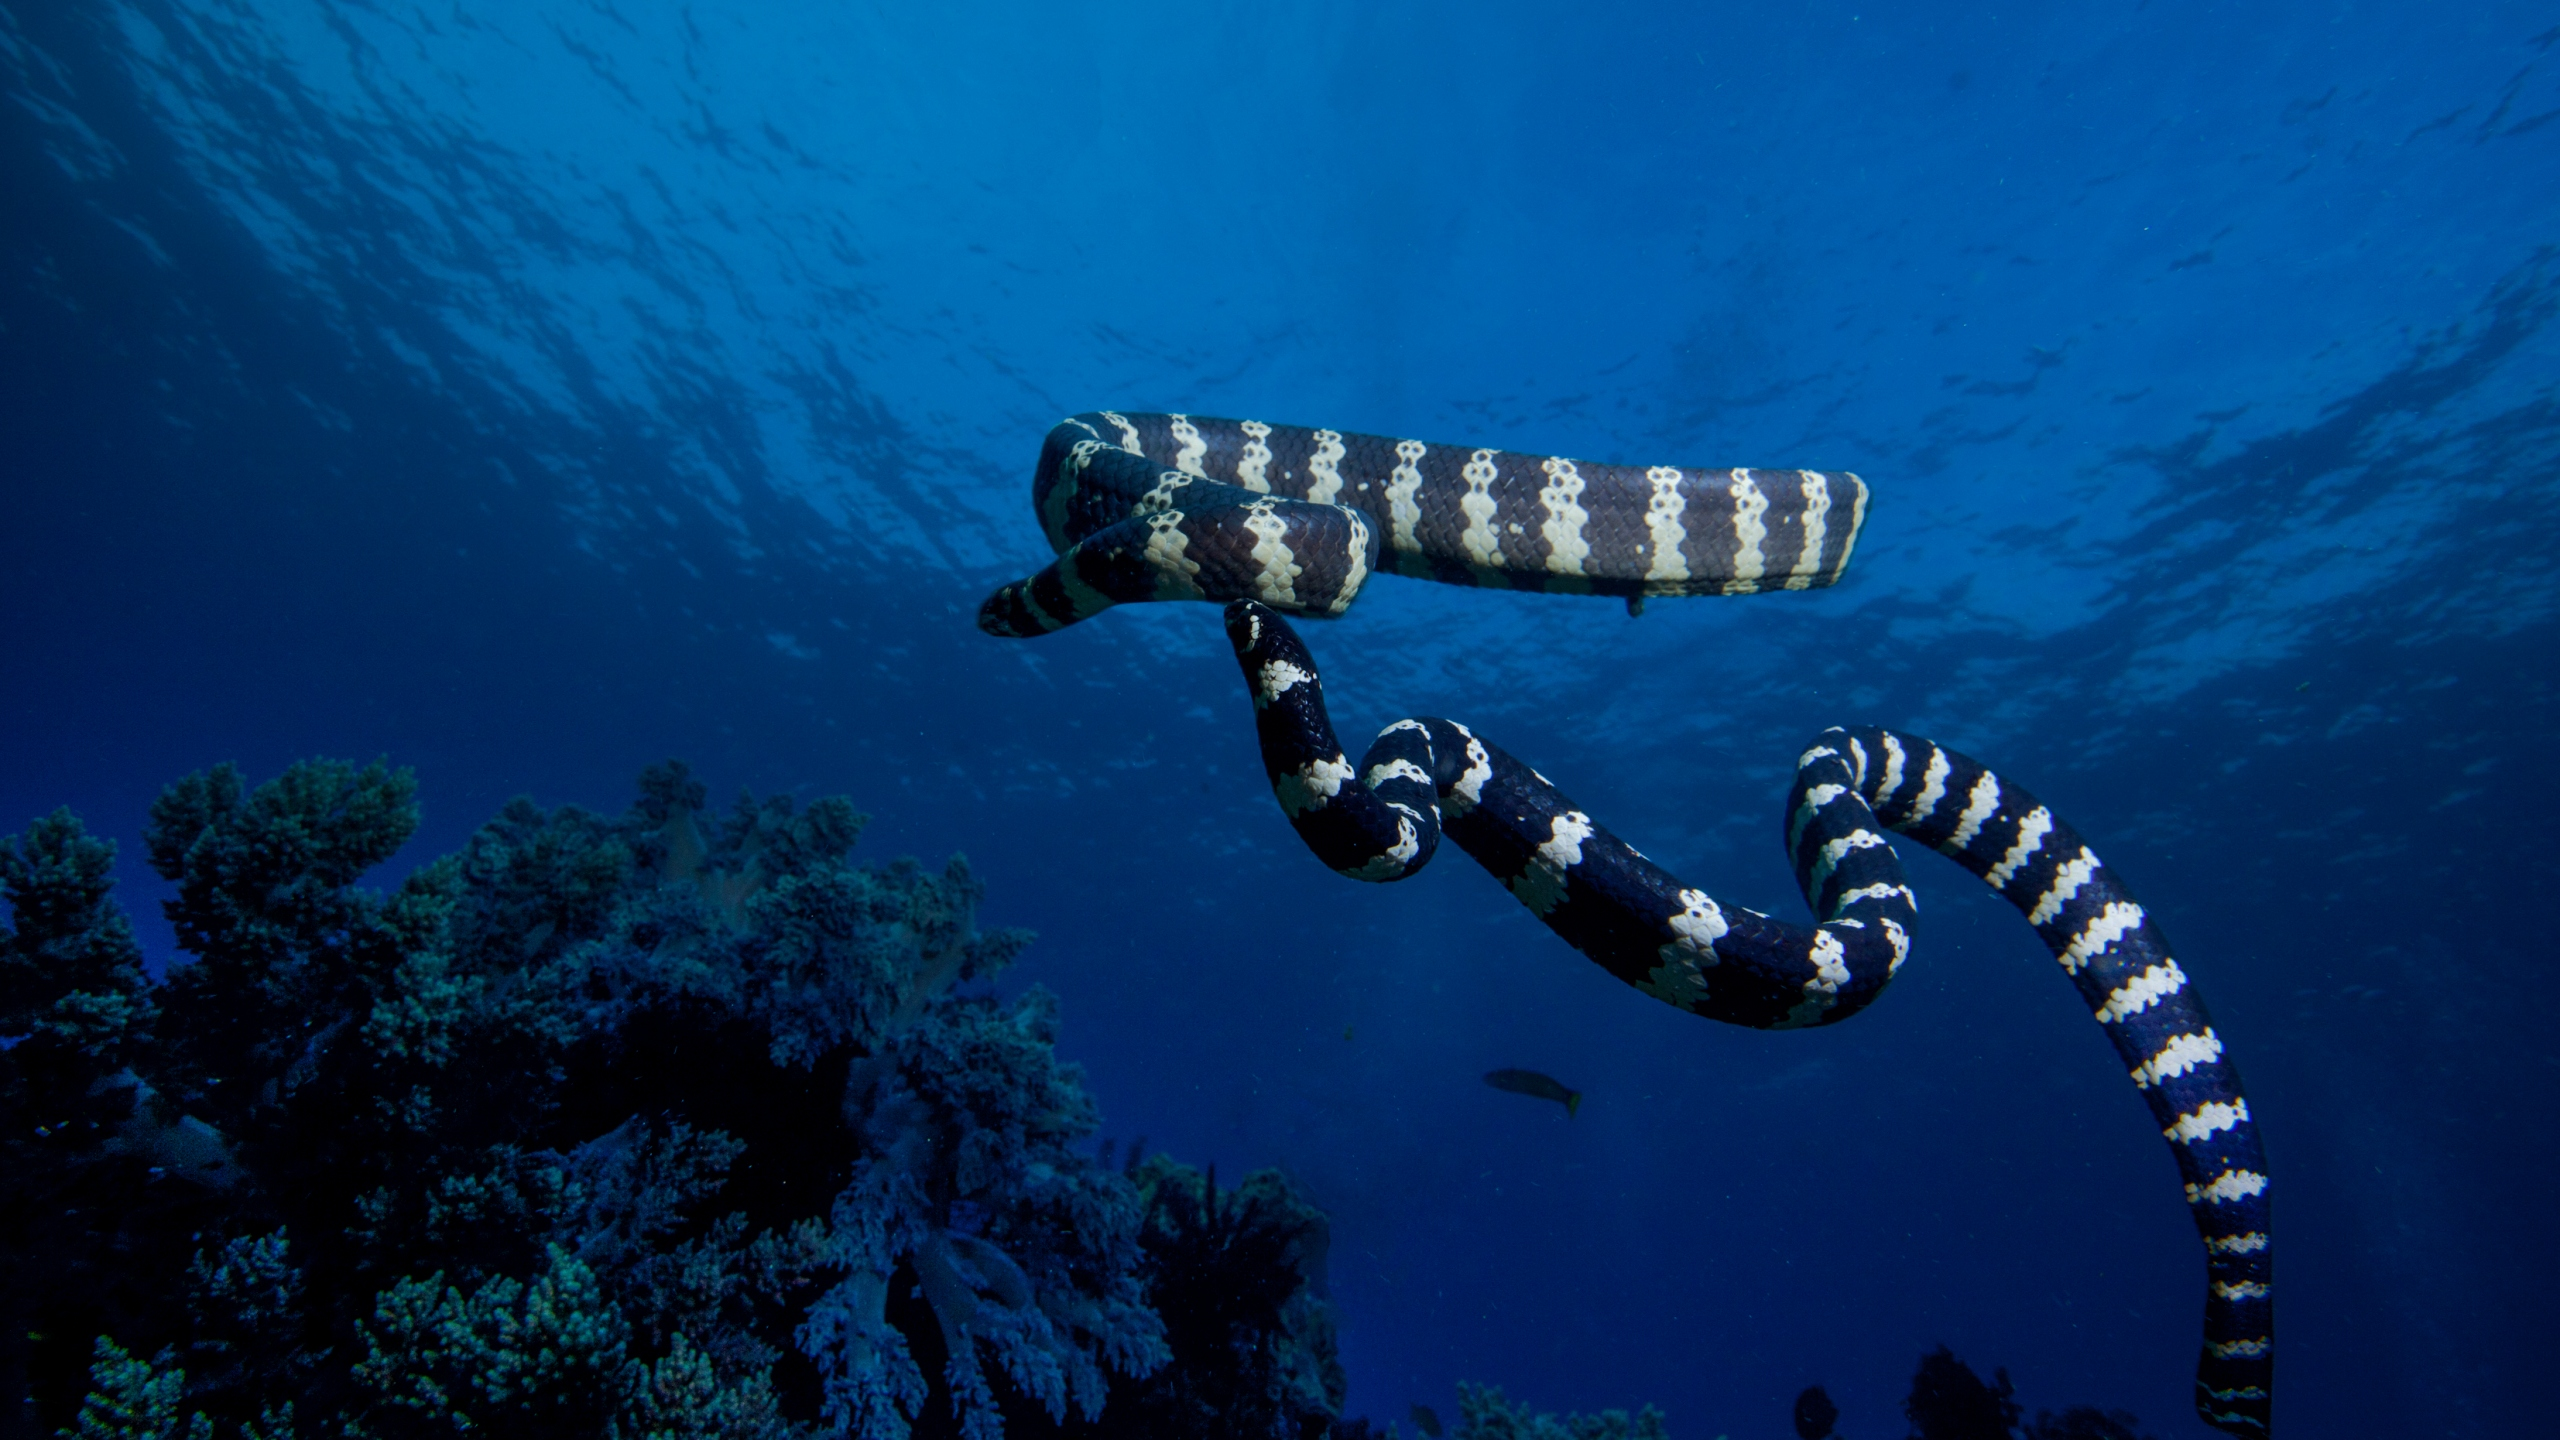 Sea snakes are seen in file image. (Credit: iStock / Getty Images Plus)